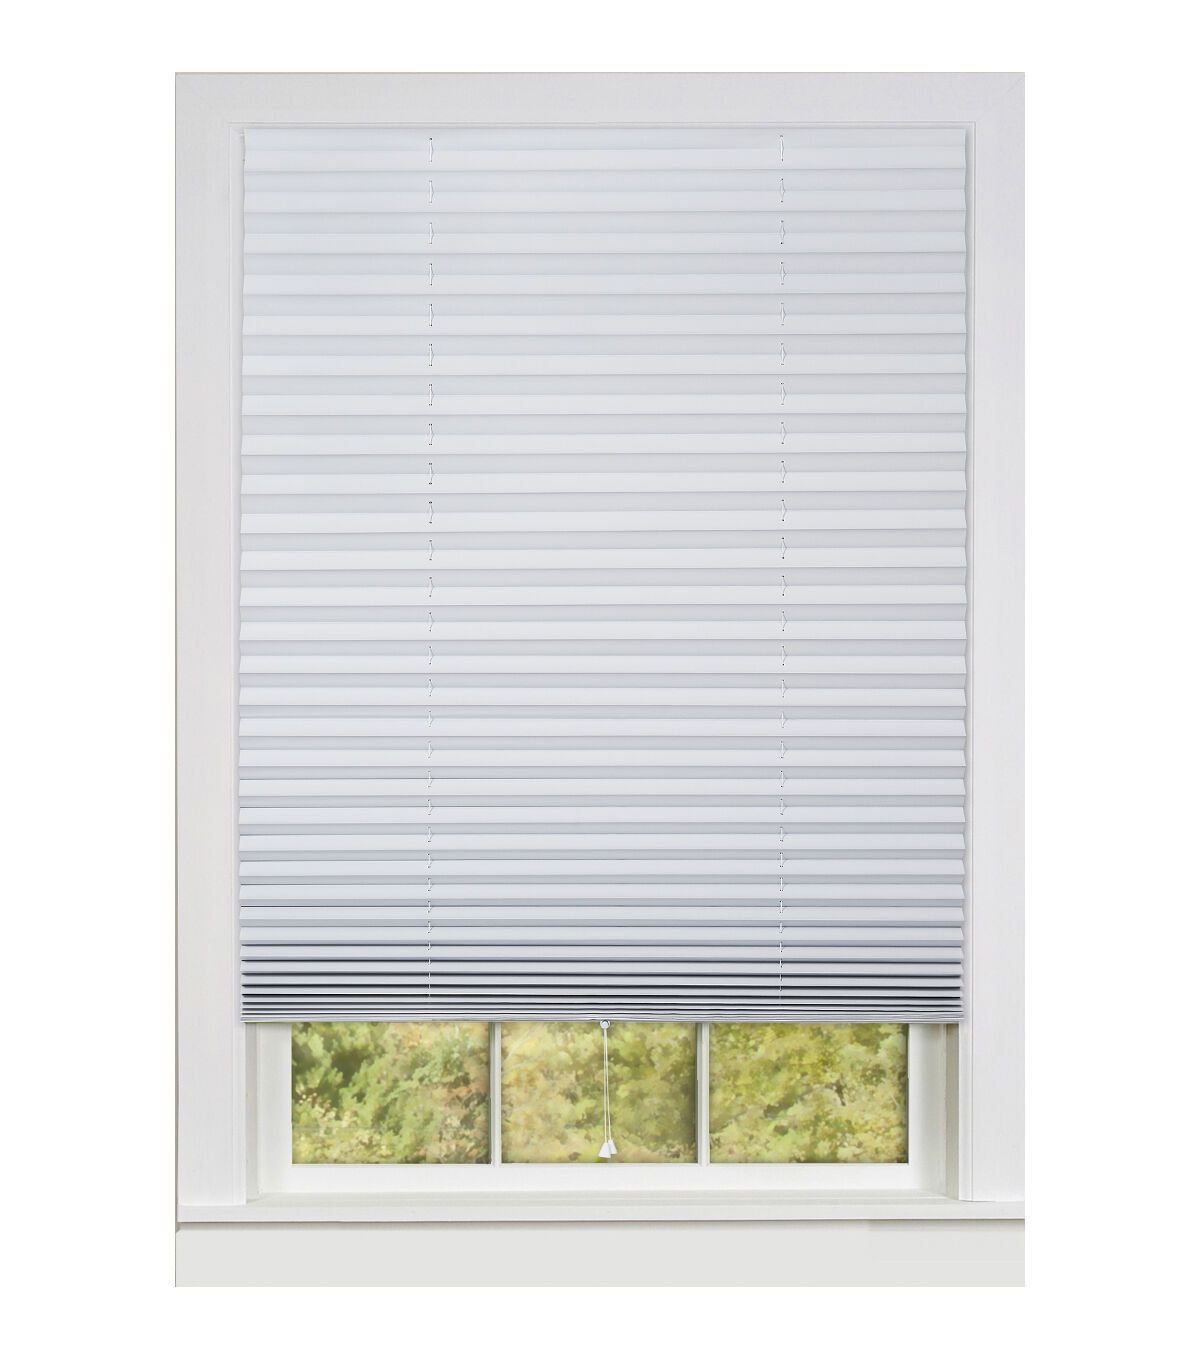 1 2 3 36 X75 Vinyl Room Darkening Pleated Shades White Joann In 2020 Vinyl Blinds Living Room Blinds Vinyl Room